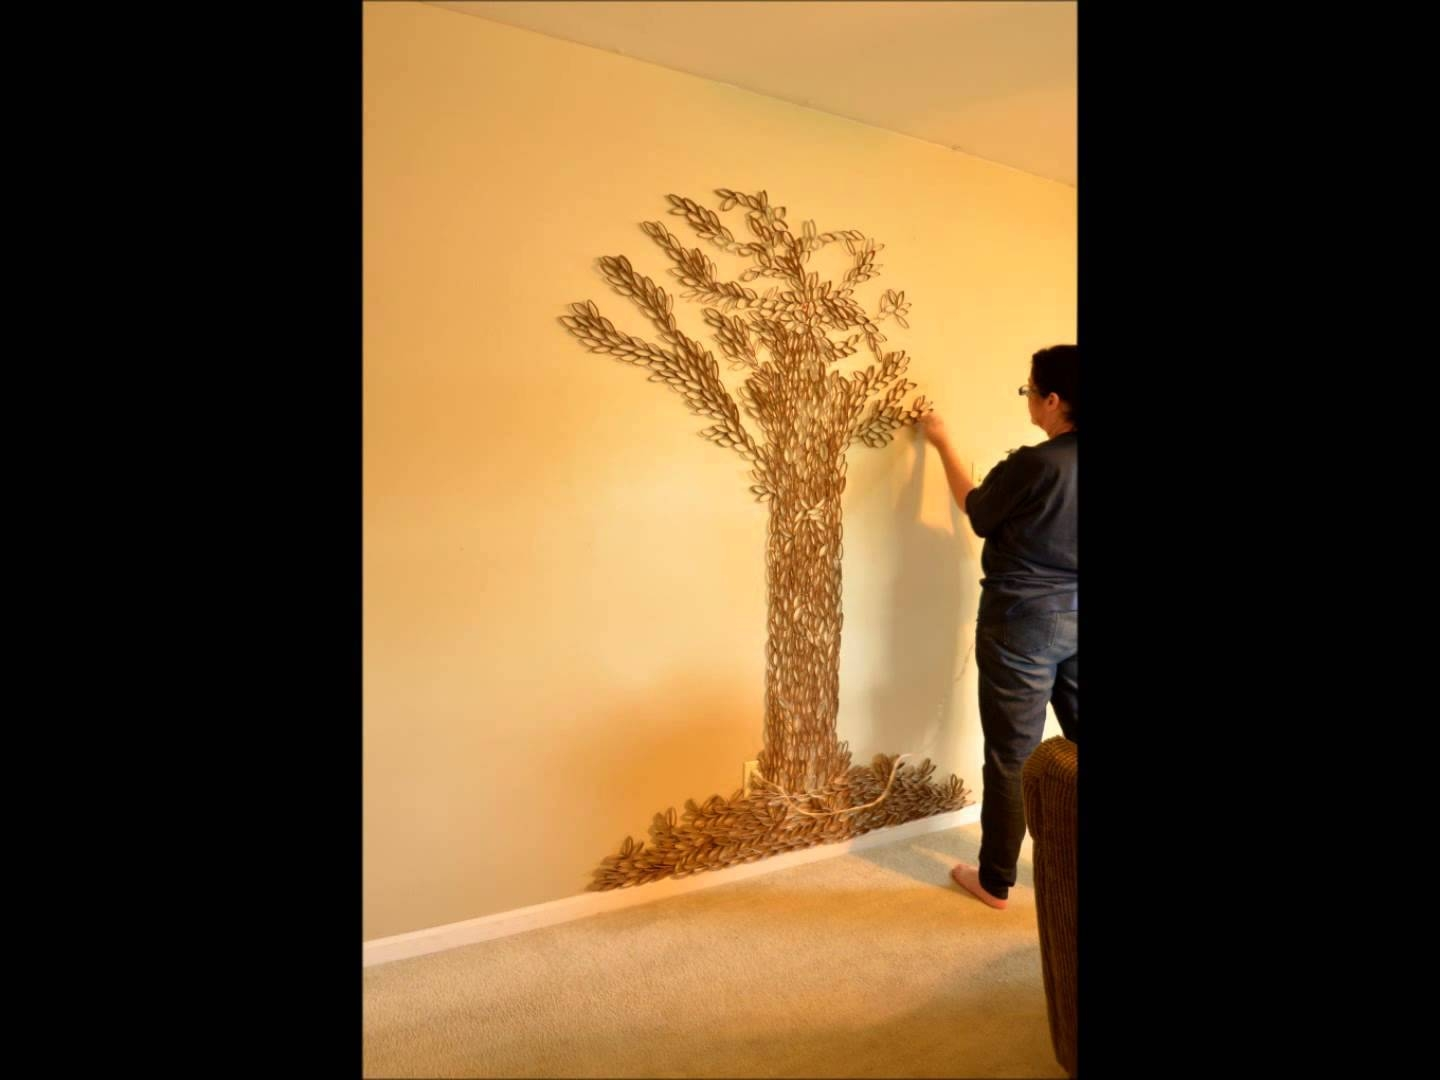 Tree Of Life Wall Art – 7Ft Paper Roll Sculpture In 1 Minute With Latest Tree Sculpture Wall Art (View 14 of 20)